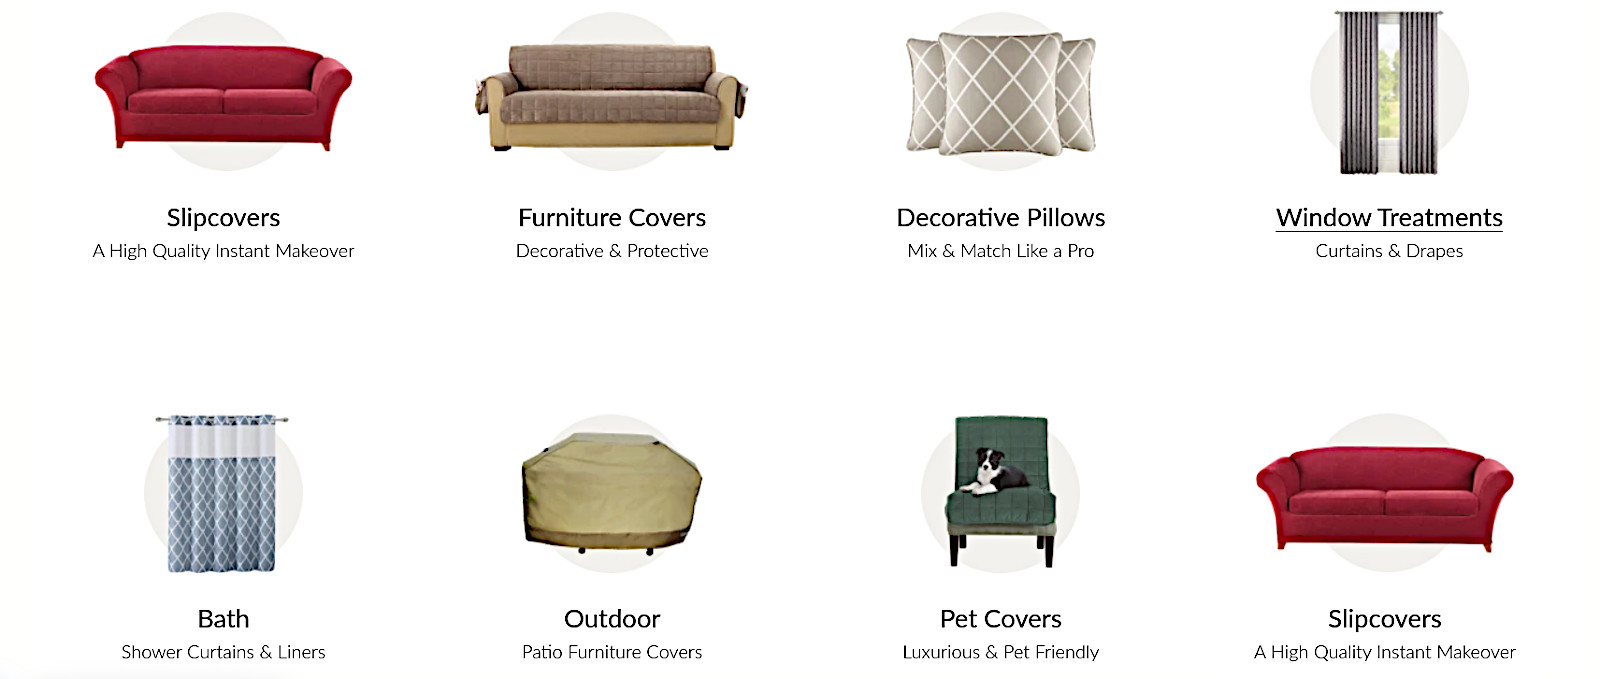 Recommended furniture covers, slipcovers, pillows, home furnishings